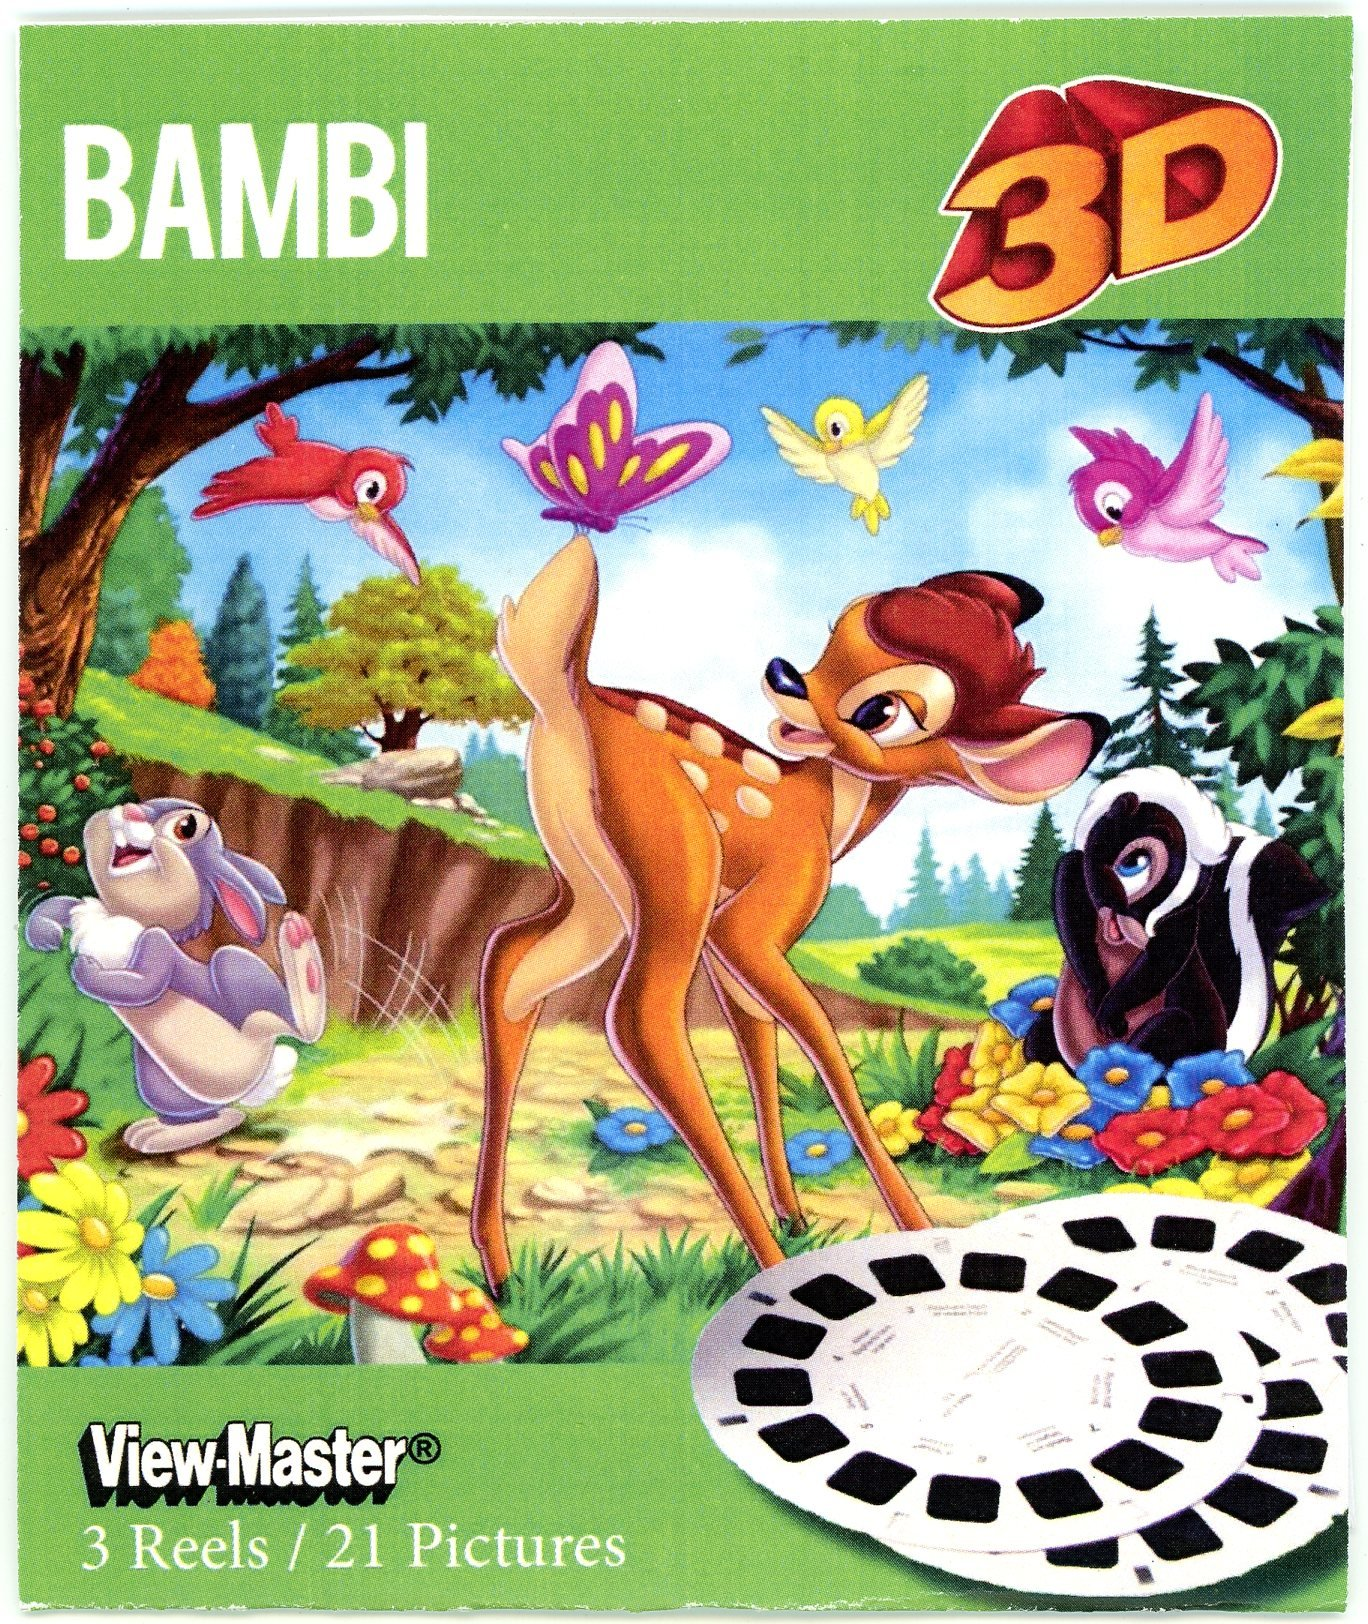 ViewMaster- Disney's Bambi - 3 Reels on Card - NEW by 3Dstereo ViewMaster